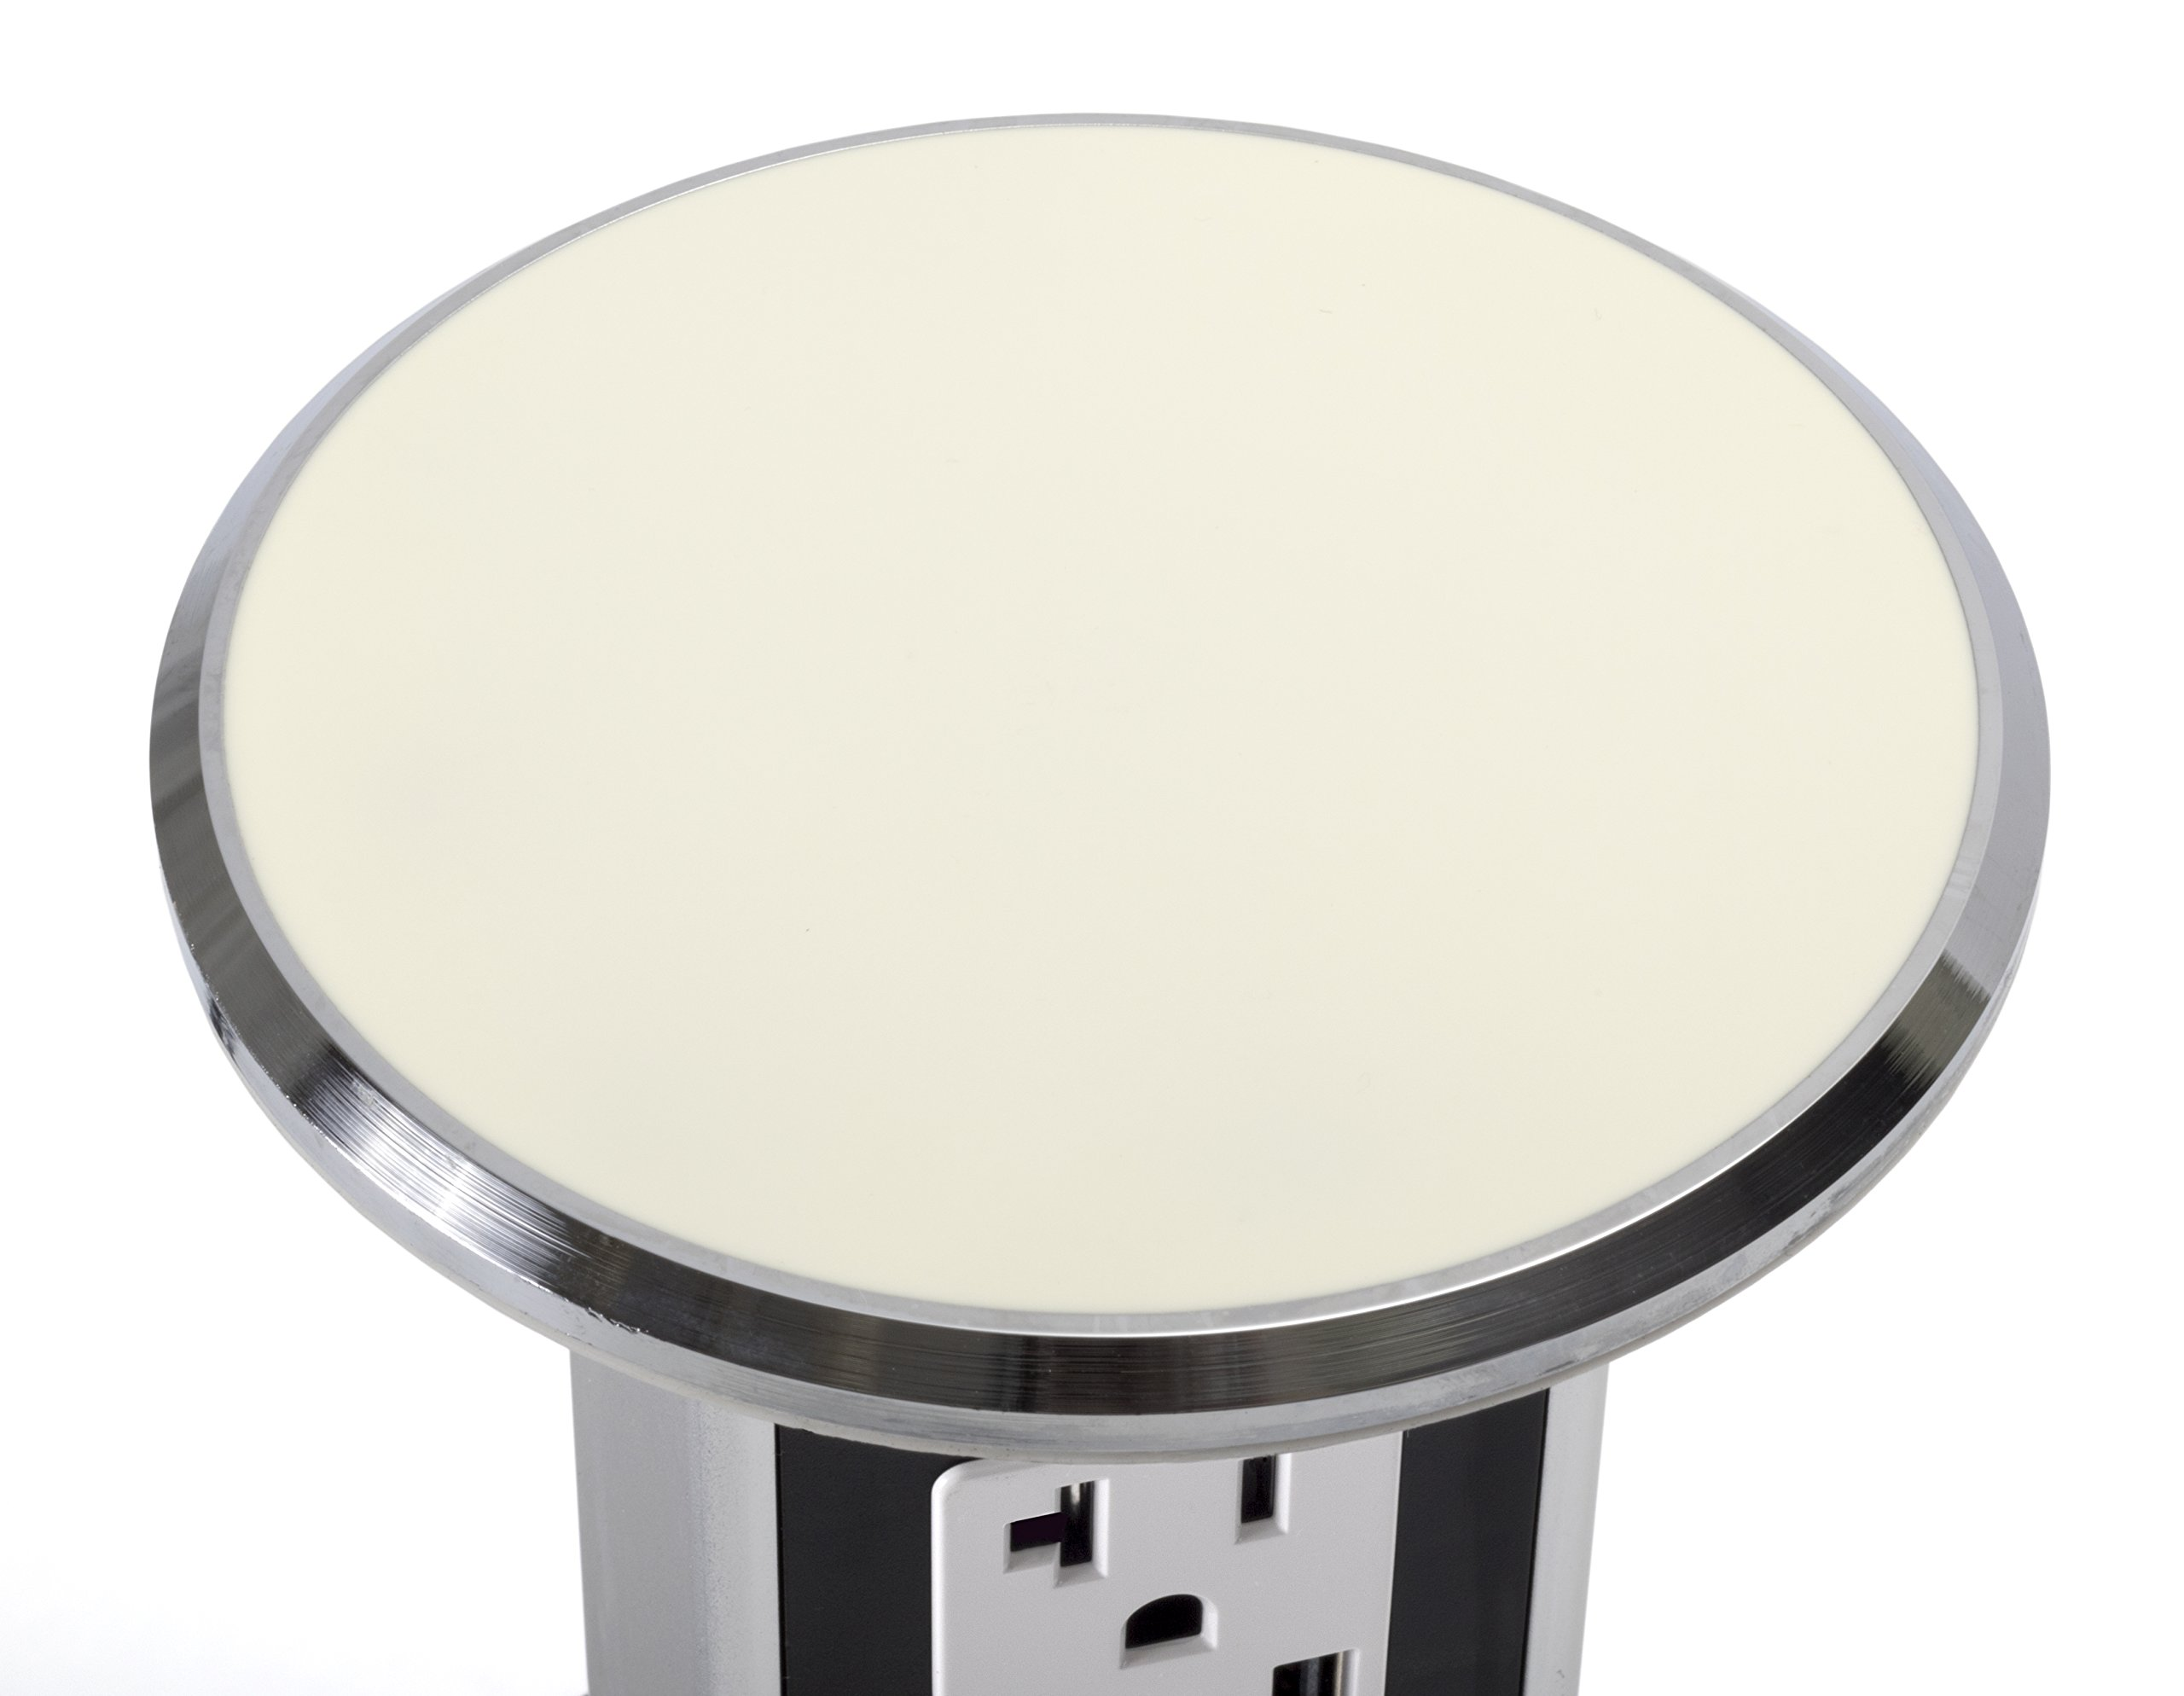 Lew Electric PUR20-OW Round Countertop Pop Up 20 Amp Receptacles - Off White